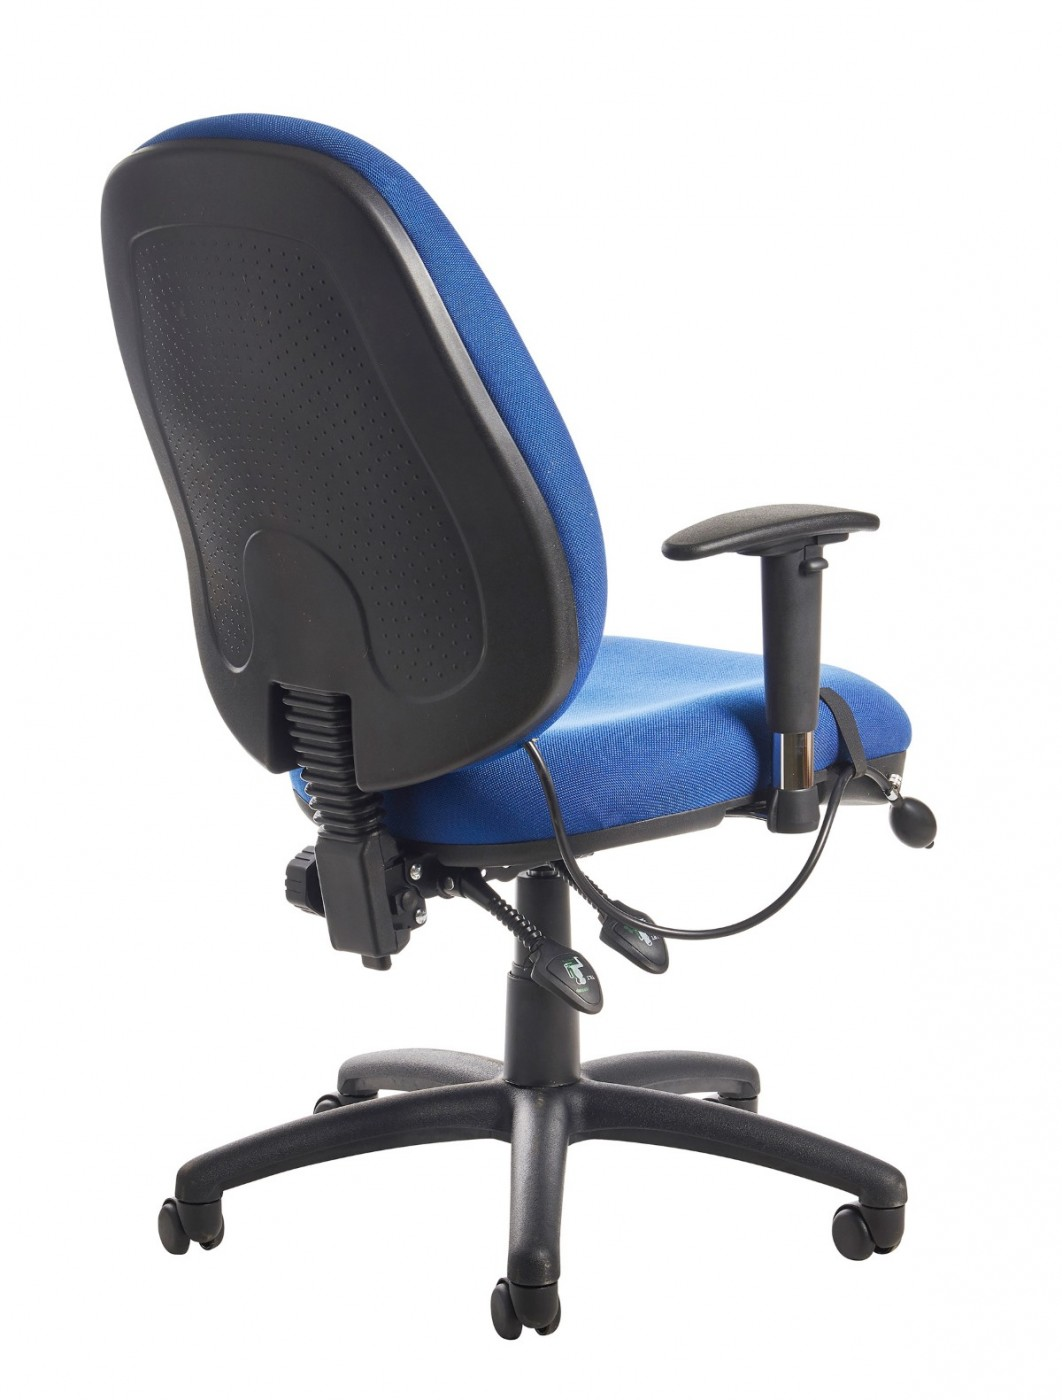 Office Chairs - Sofia Fabric Managers High Back Office Chair SOF300T1